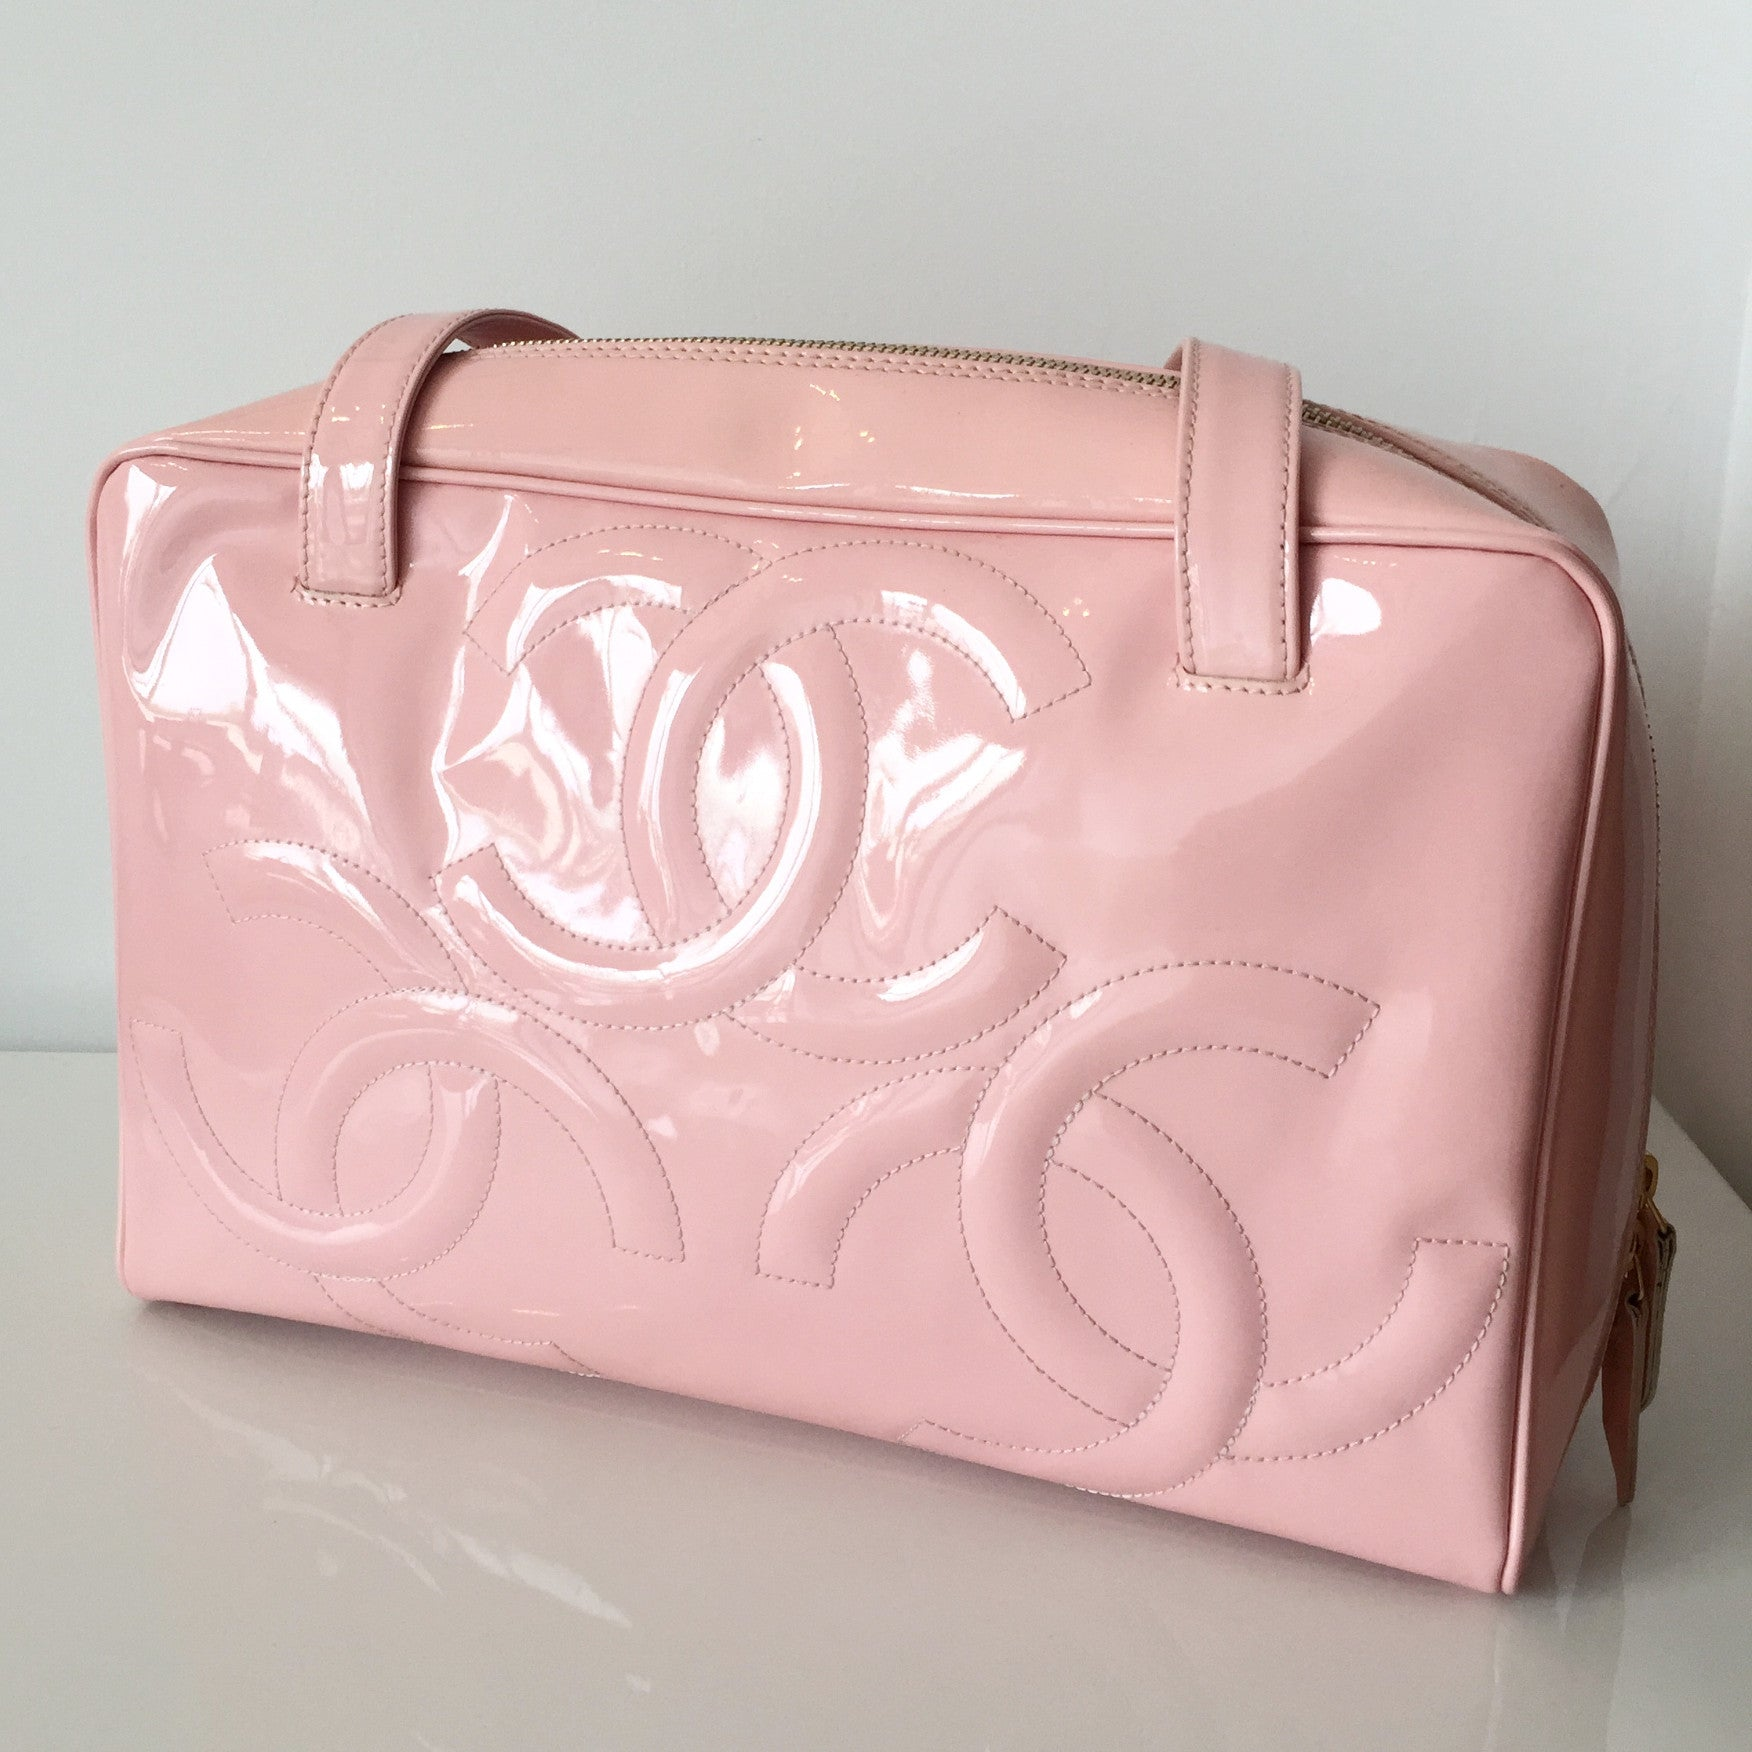 Authentic CHANEL Patent Pink Tote